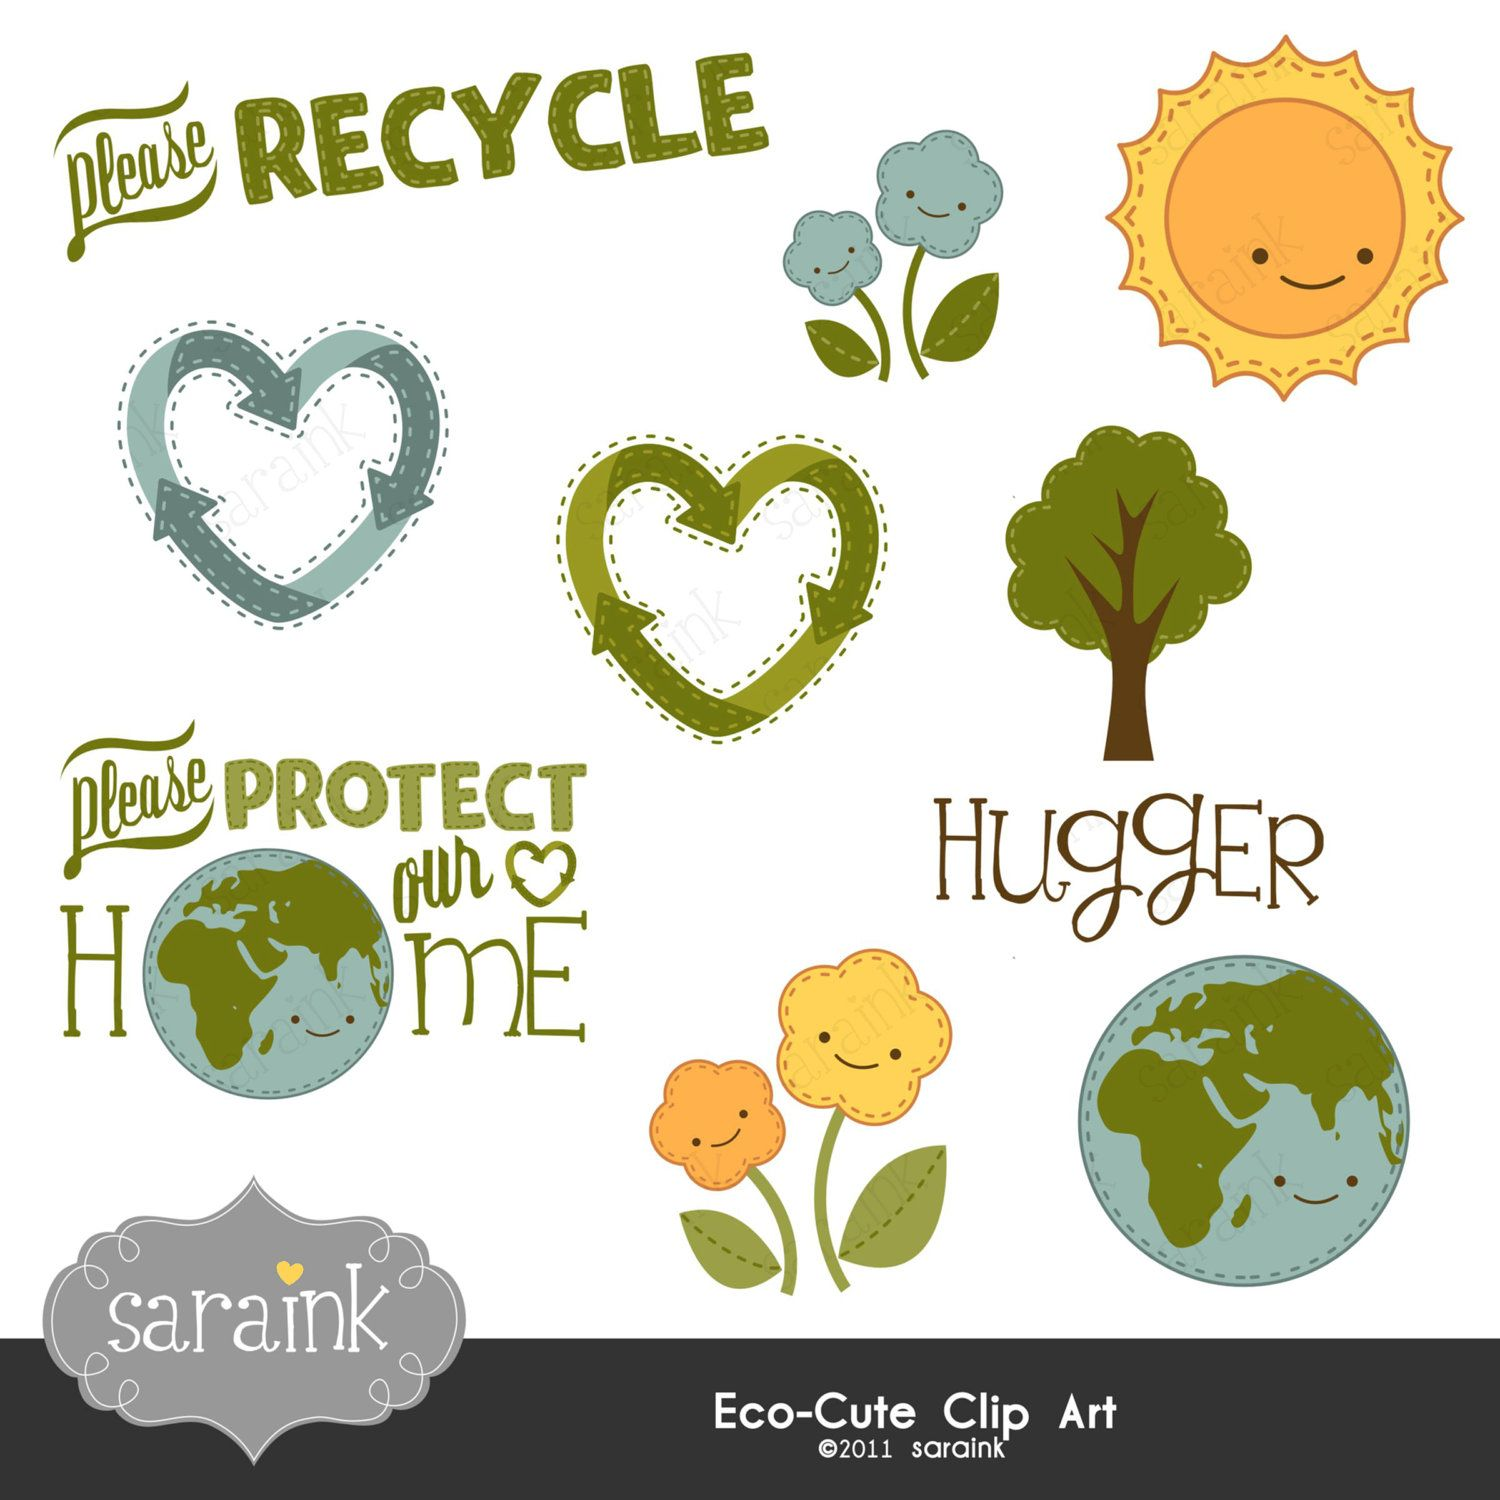 Earth Clipart, Globe Clipart, Sun Clipart, Recycling Clipart.